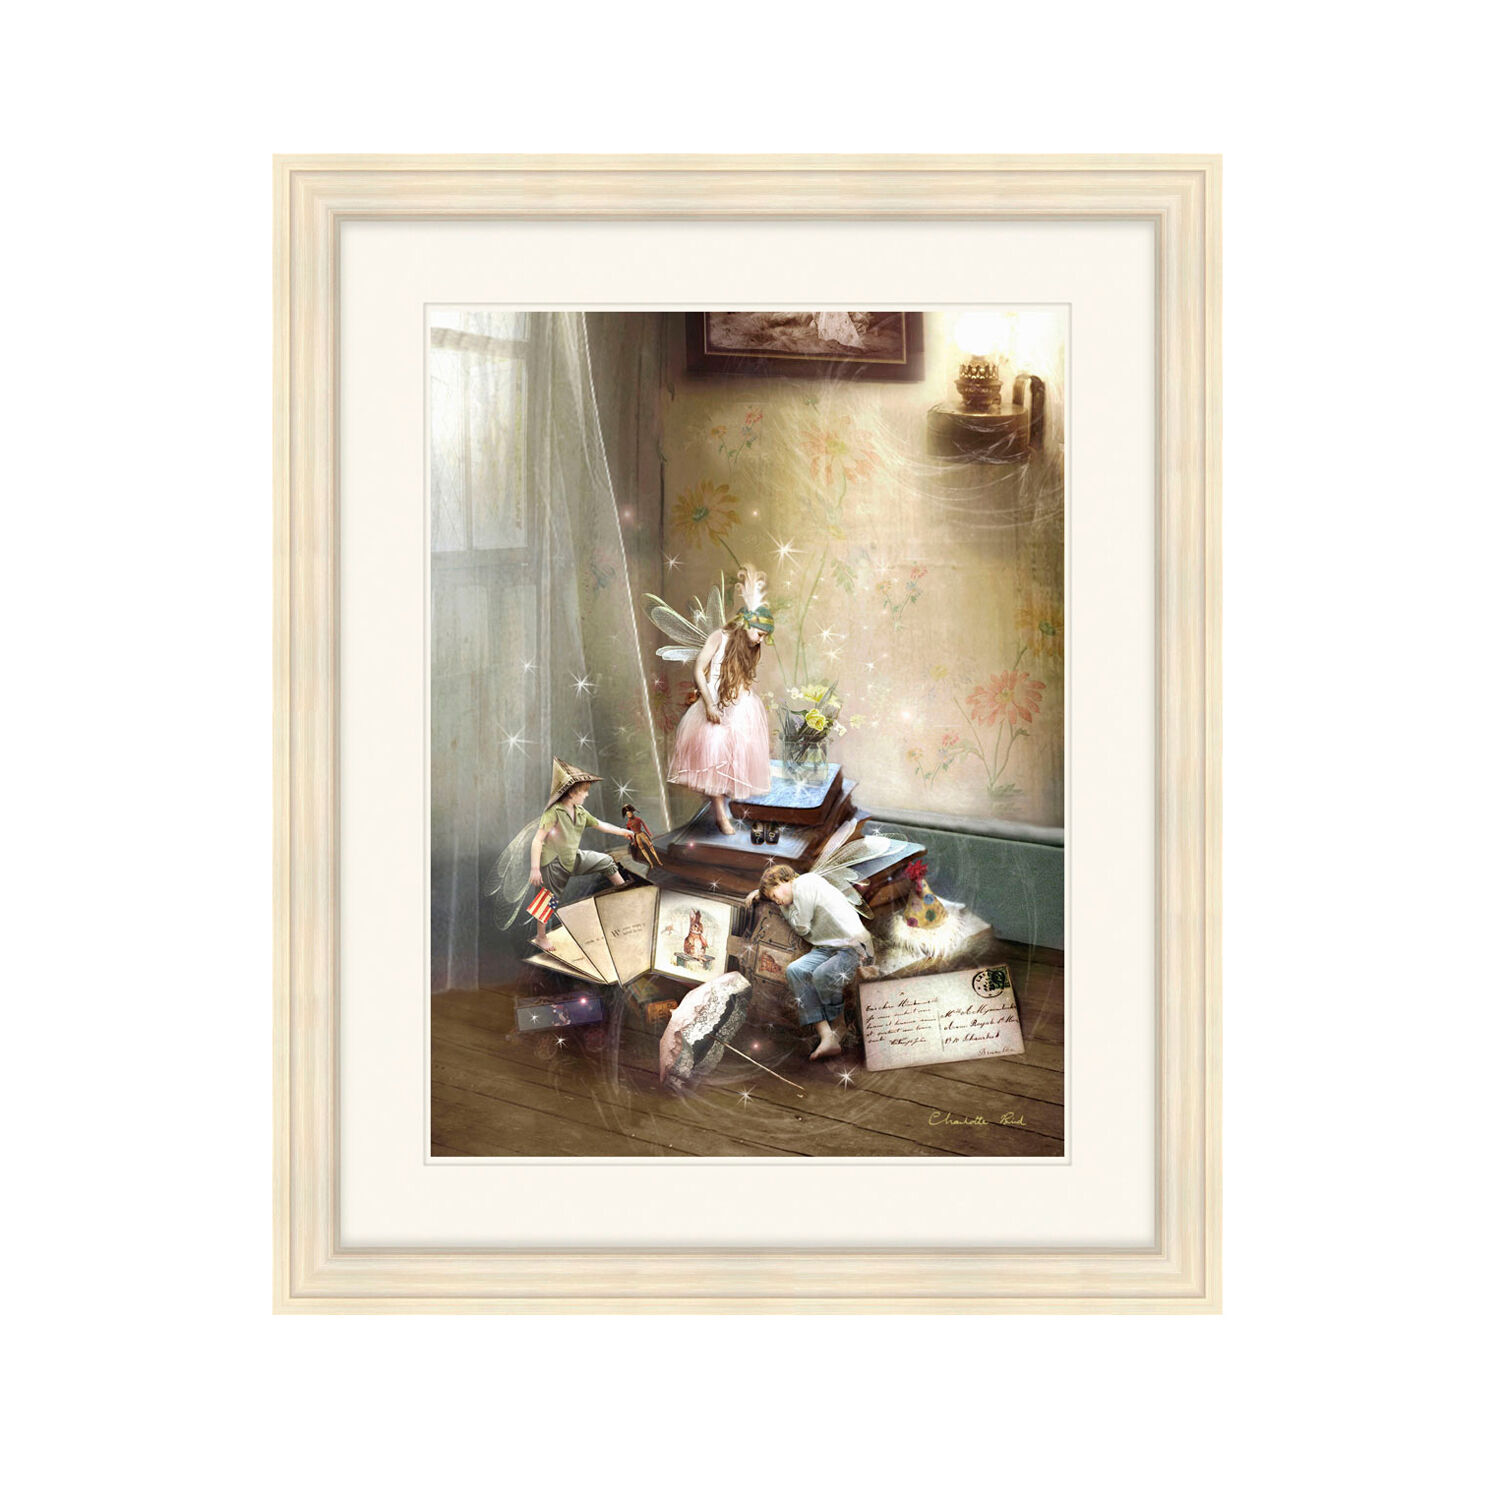 framed wall pictures for living room ireland grey with log burner art home store more the lost toys 53cm x 65cm